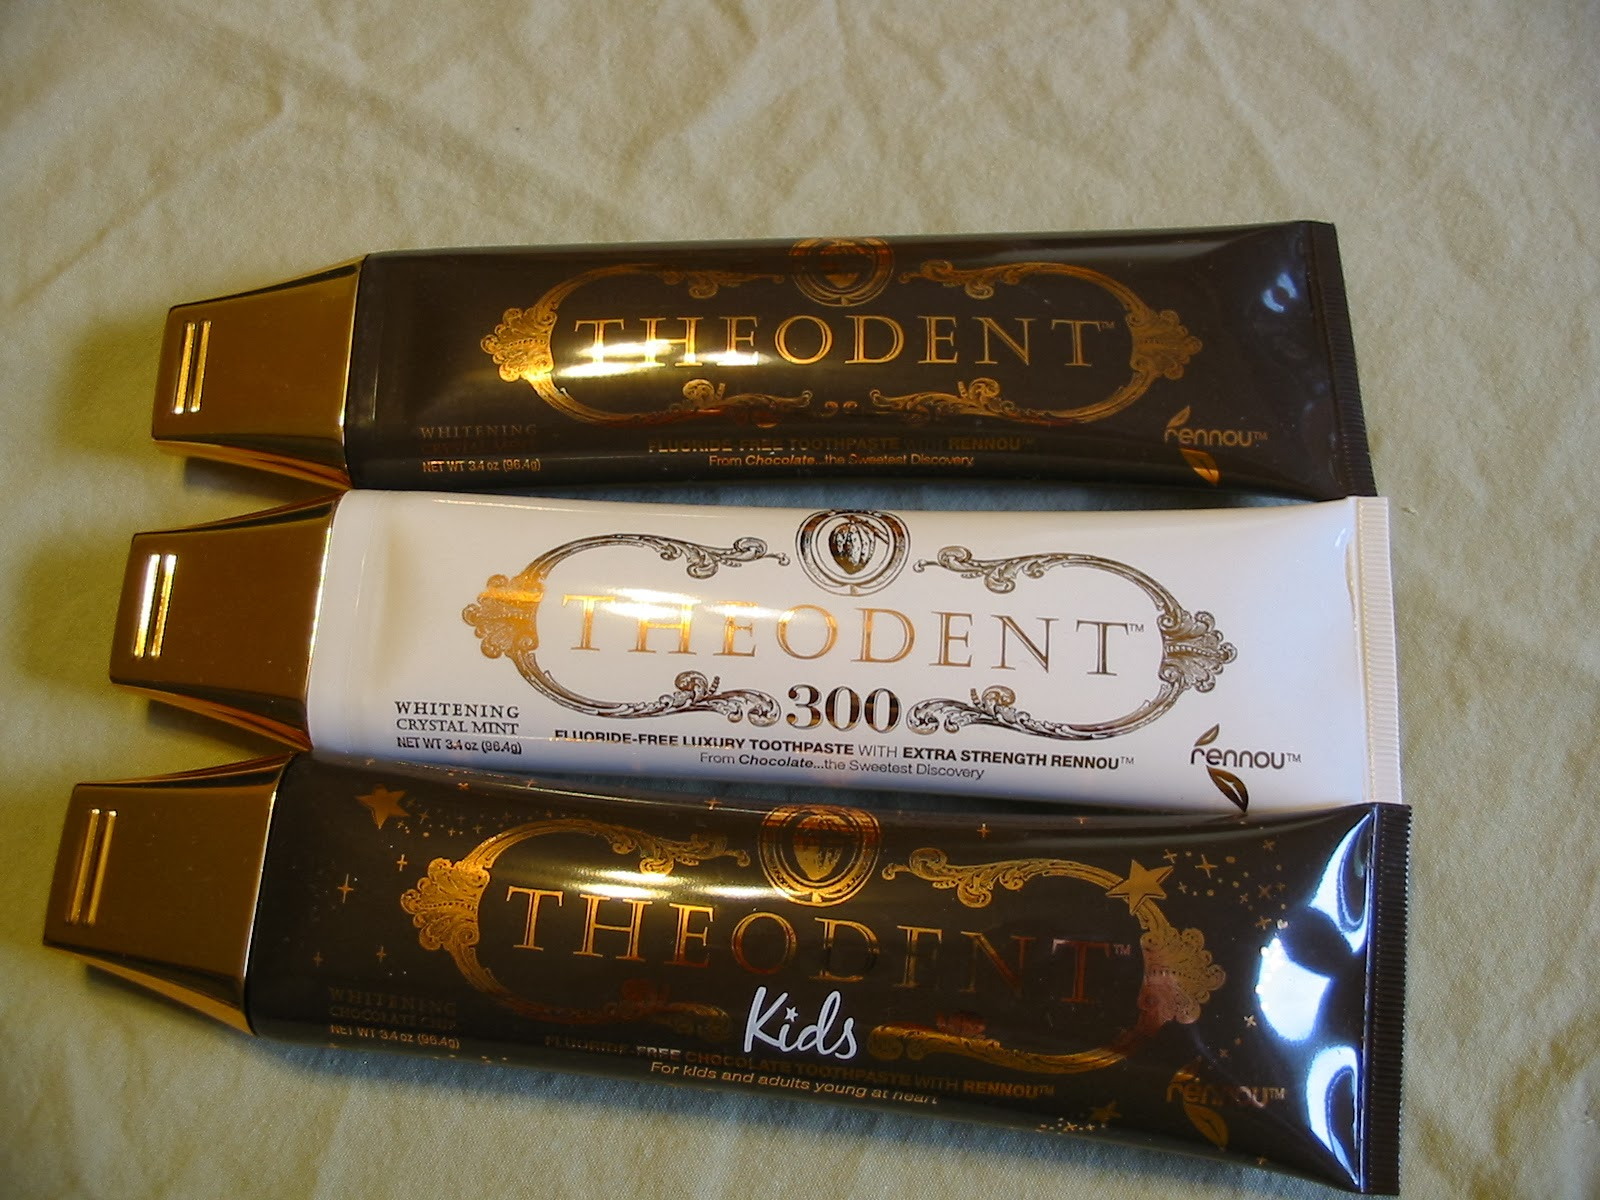 Theodent 300 is the Most Expensive Chocolate Toothpaste in the ...